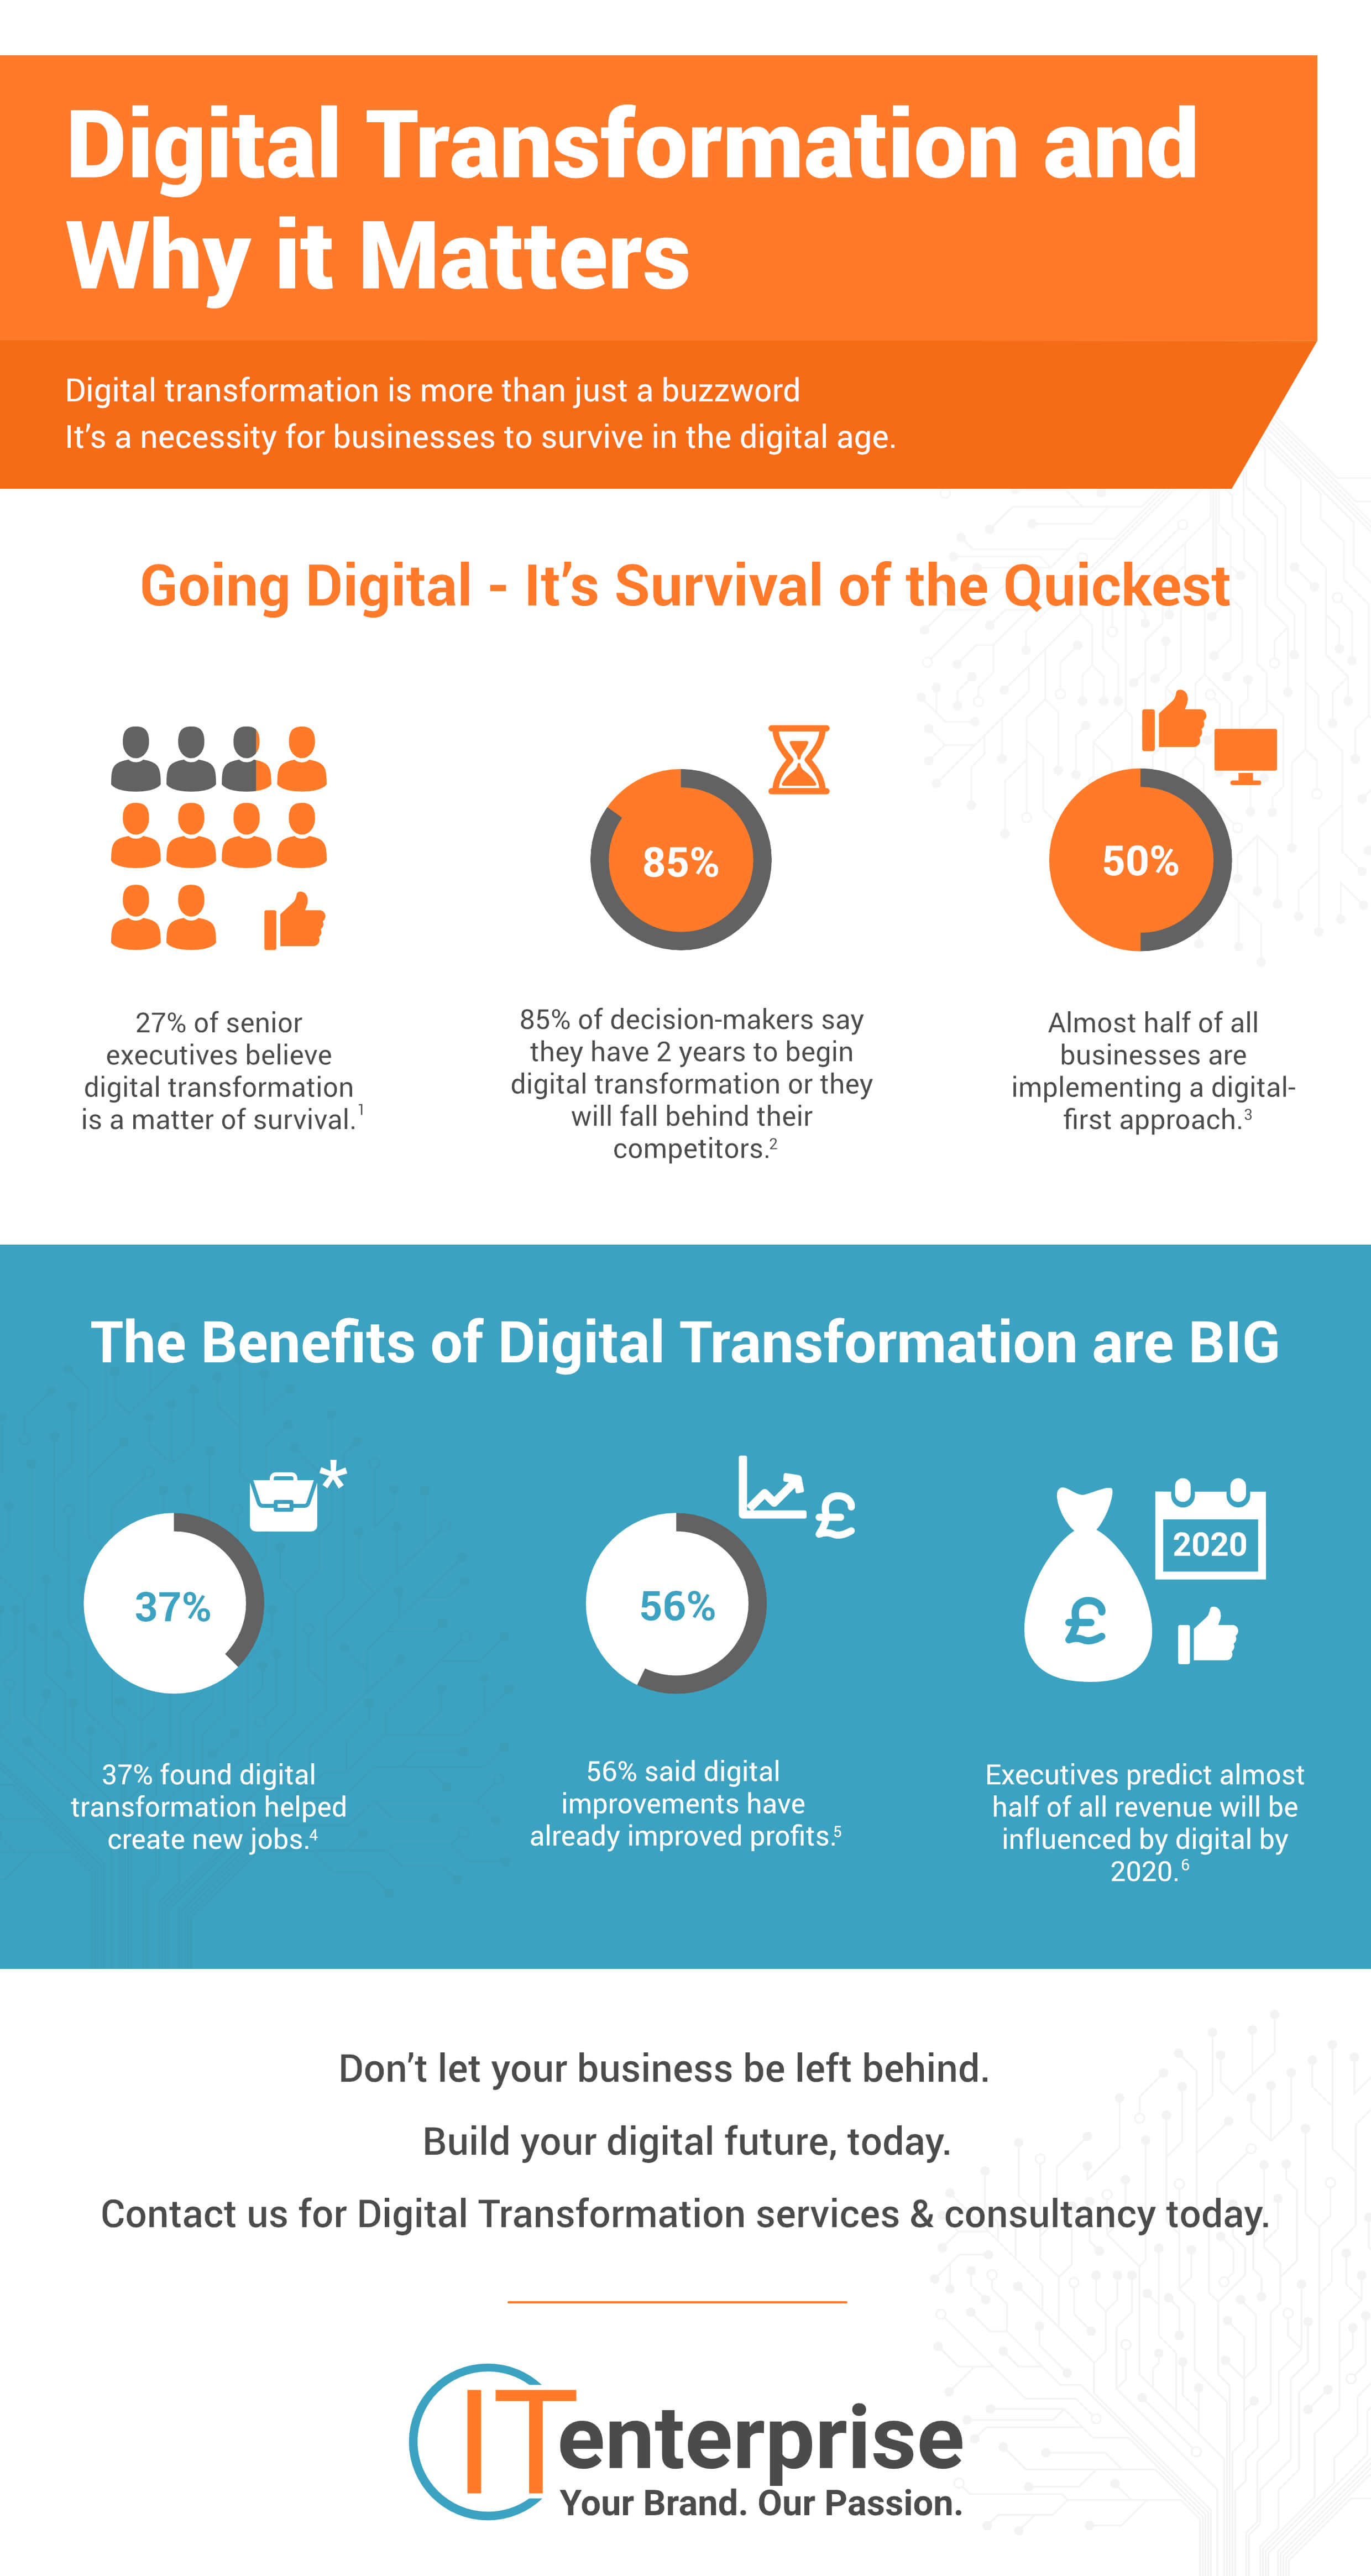 Infographic Displaying why Digital Transformation is Important